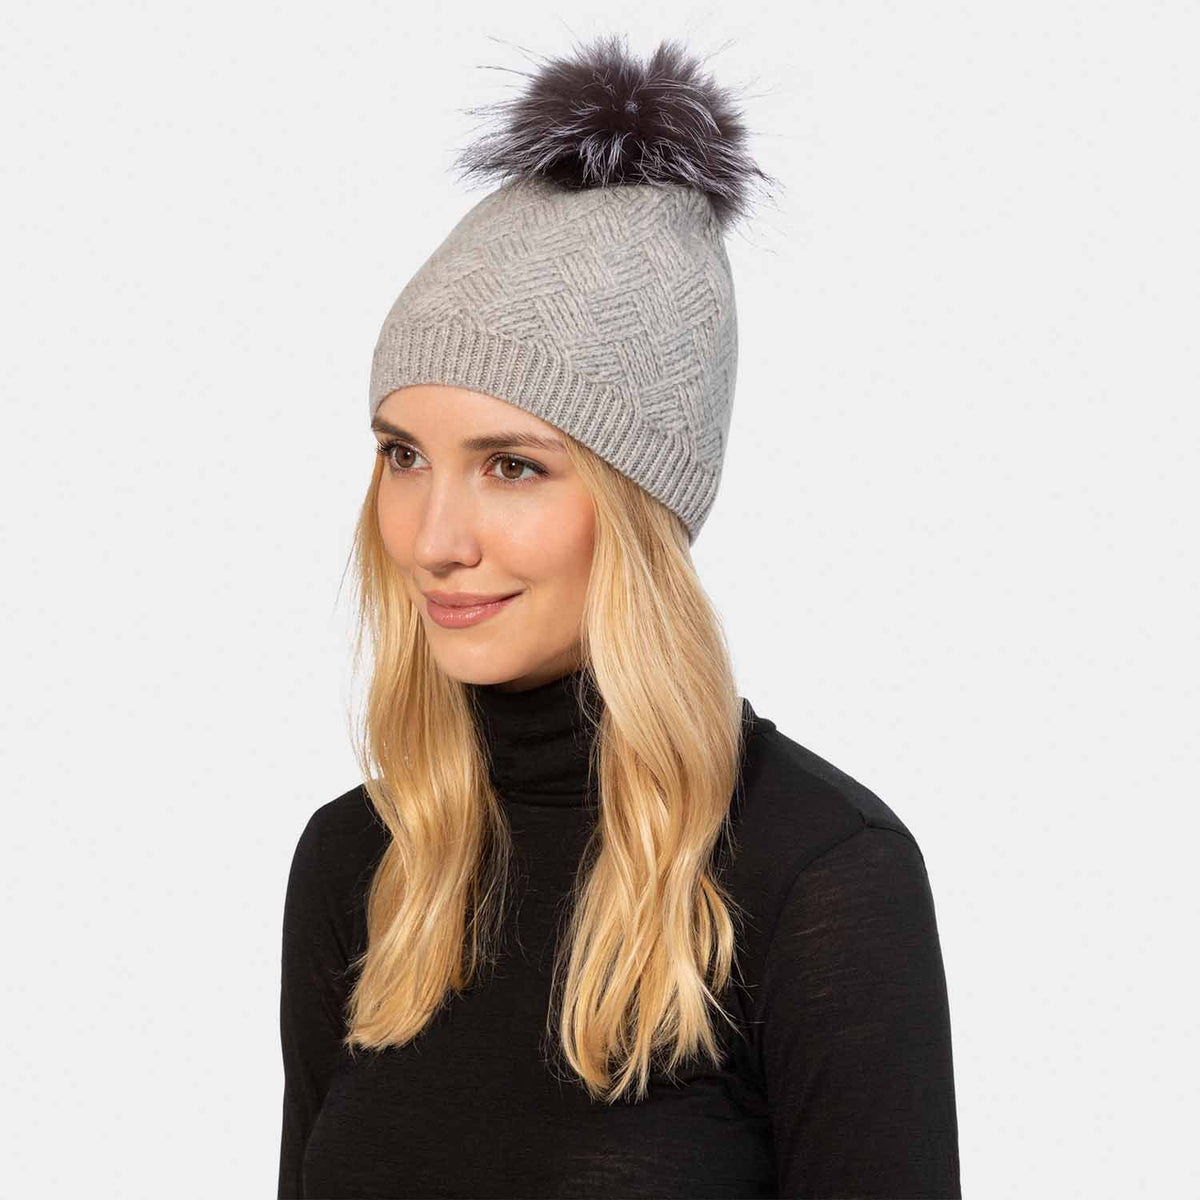 Diamond Stitch Knit Hat with Fur Pom Pom-Amicale Cashmere